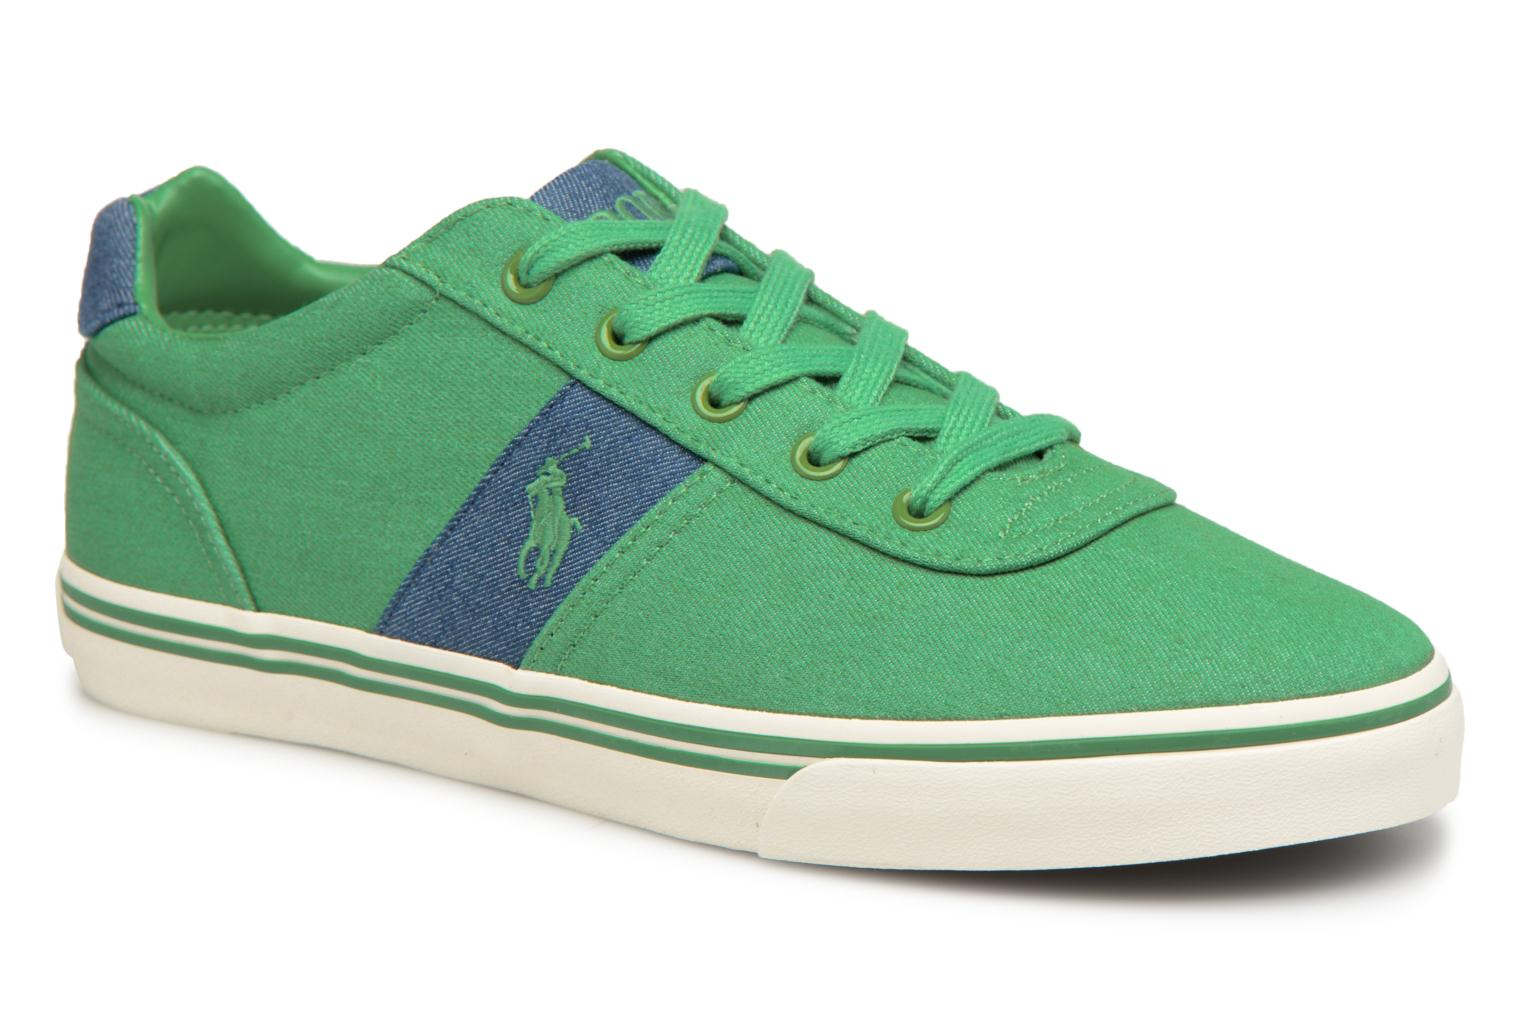 Sneakers Polo Ralph Lauren Groen